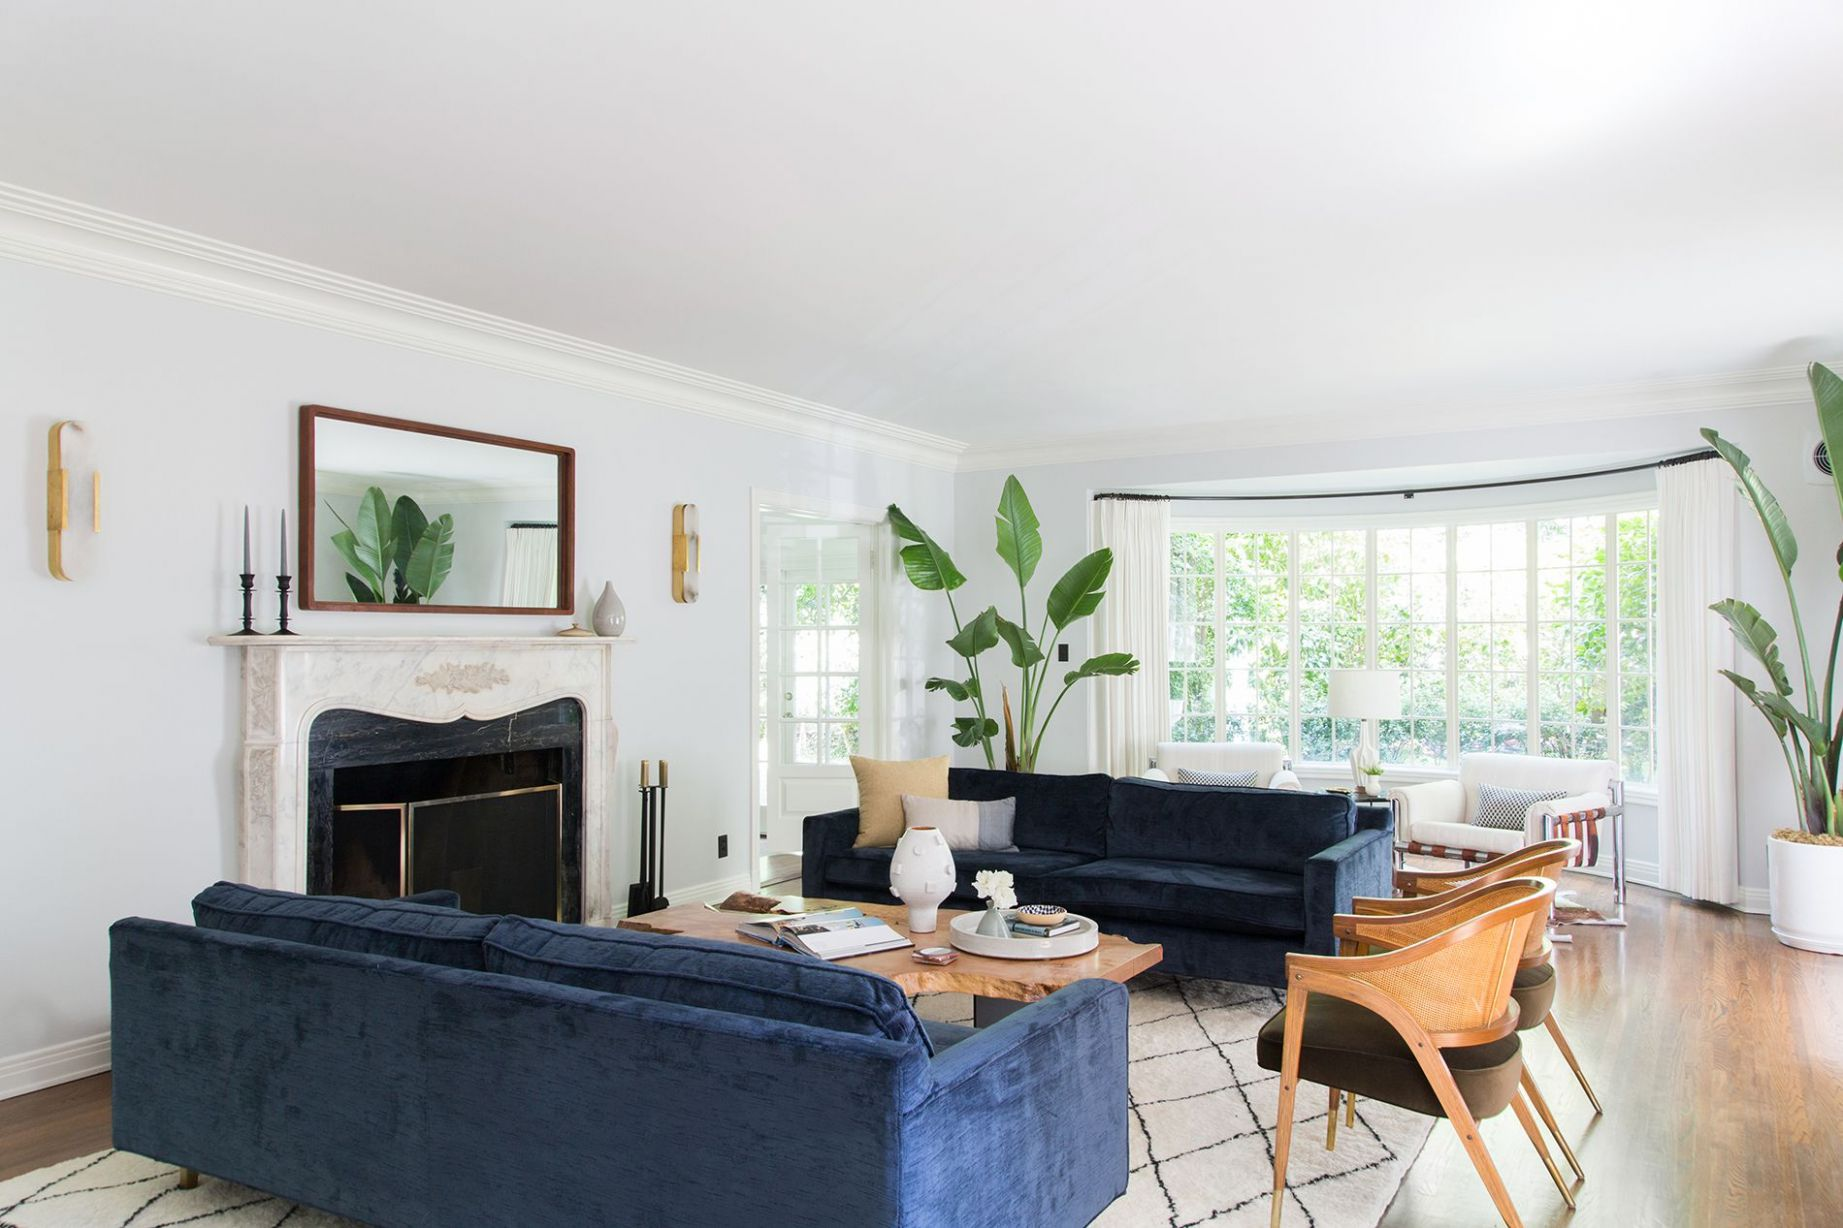 8 Living Room Trends - What Design Trends Are in For 8 - living room ideas for 2020